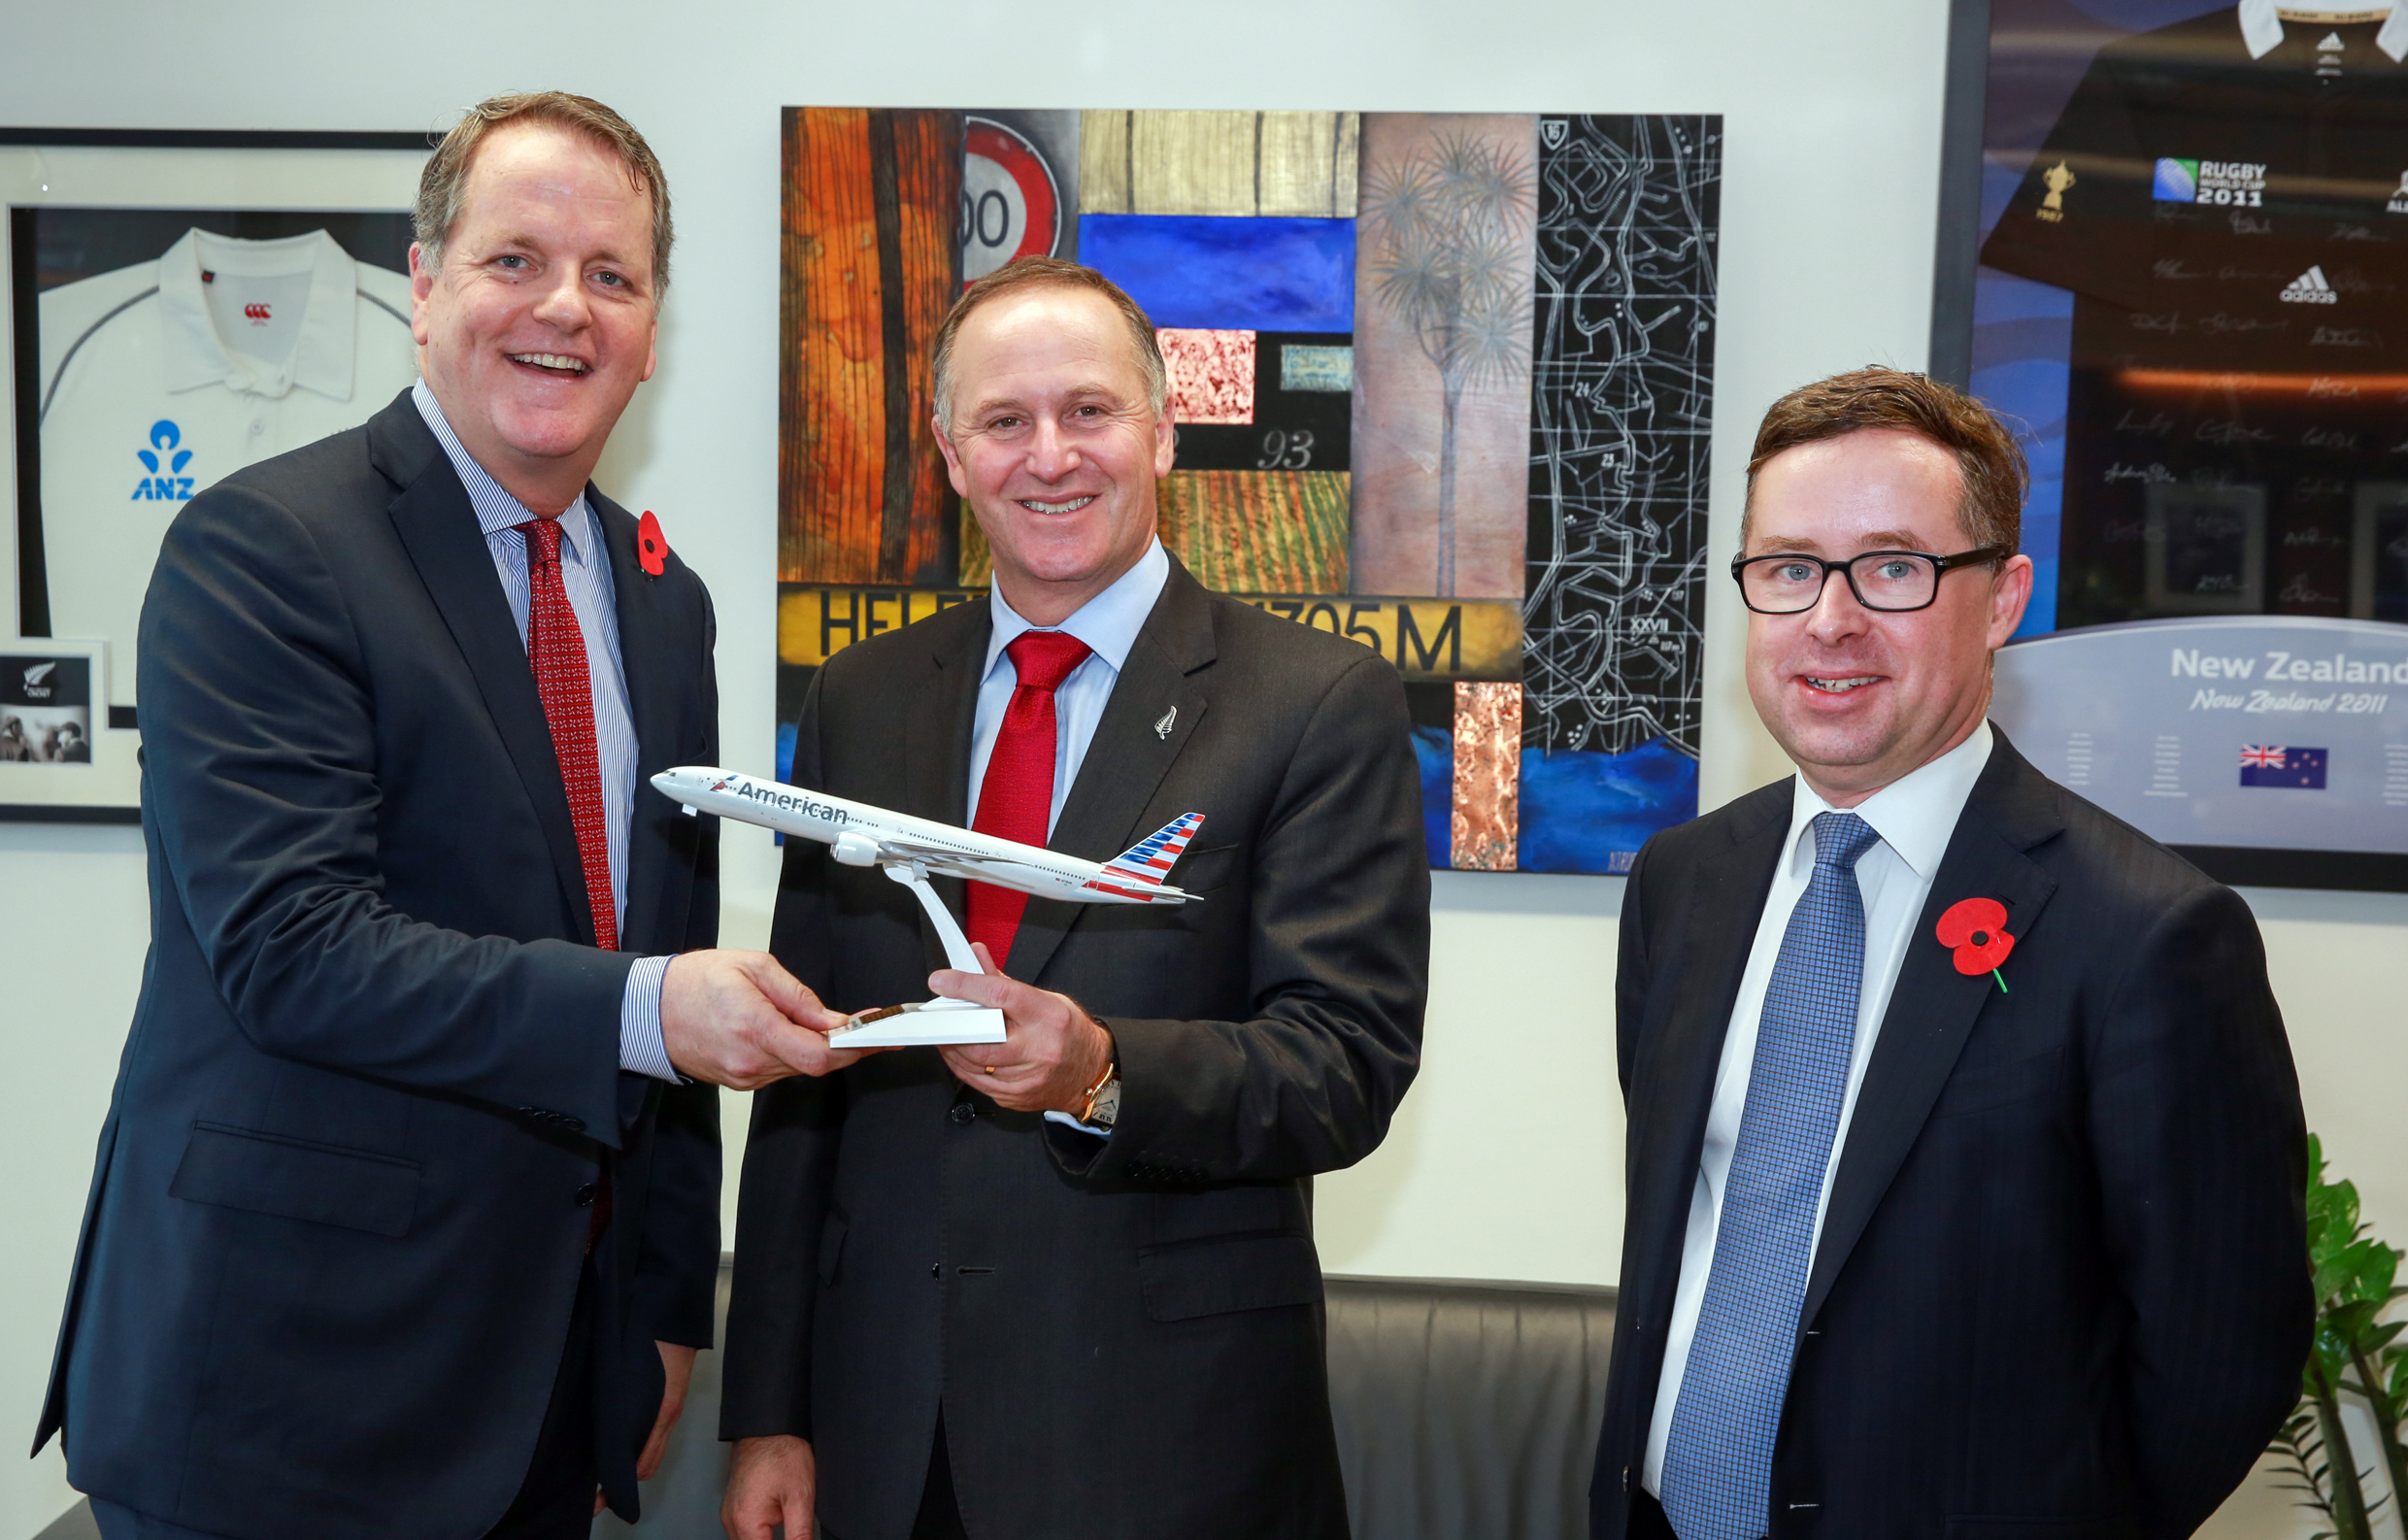 American Airlines chariman and CEO, Doug Parker,New Zealand Prime Minister, John Key and Qantas Group Chief Executive Officer, Alan Joyce announce AA's LAX-AKL service